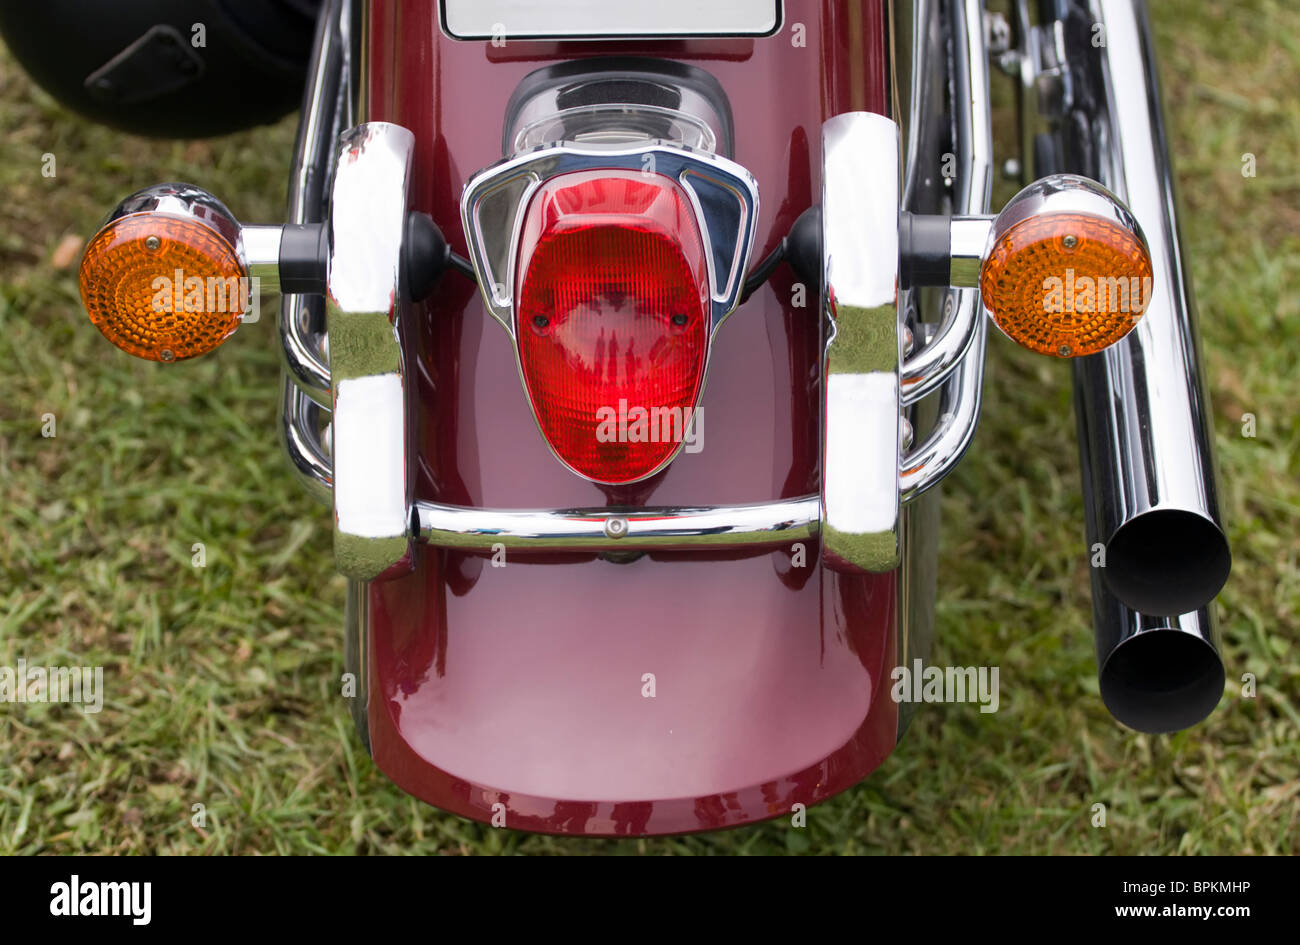 Detail of the rear view on the motorbike. - Stock Image